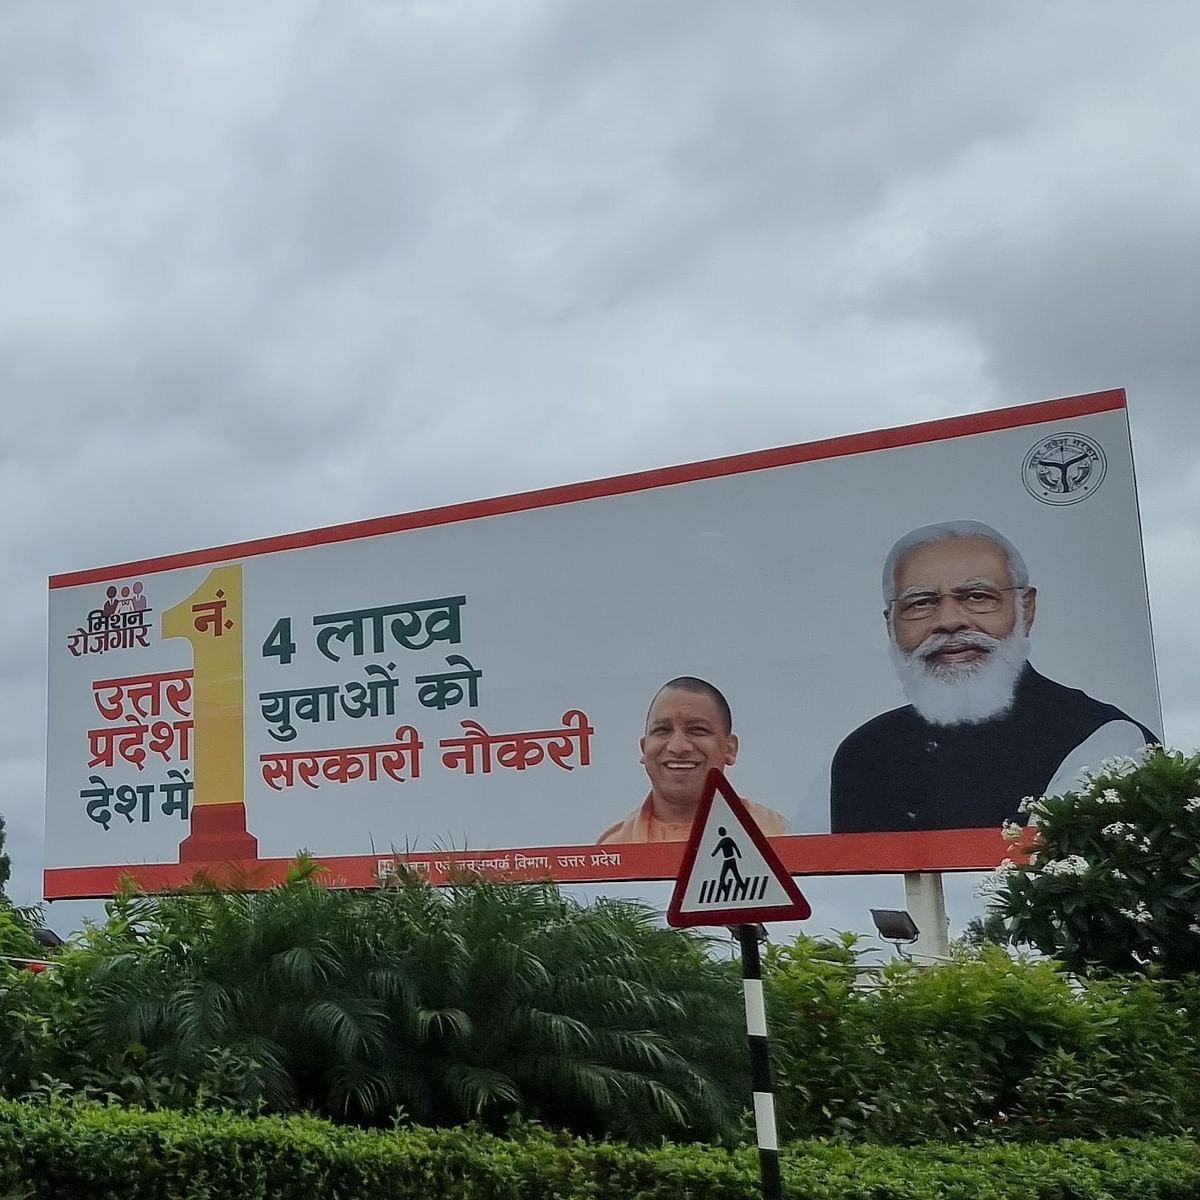 UP election billboard in Karnataka? Cops promise action as IAS officer says 'fake news'; netizens share 'proof'